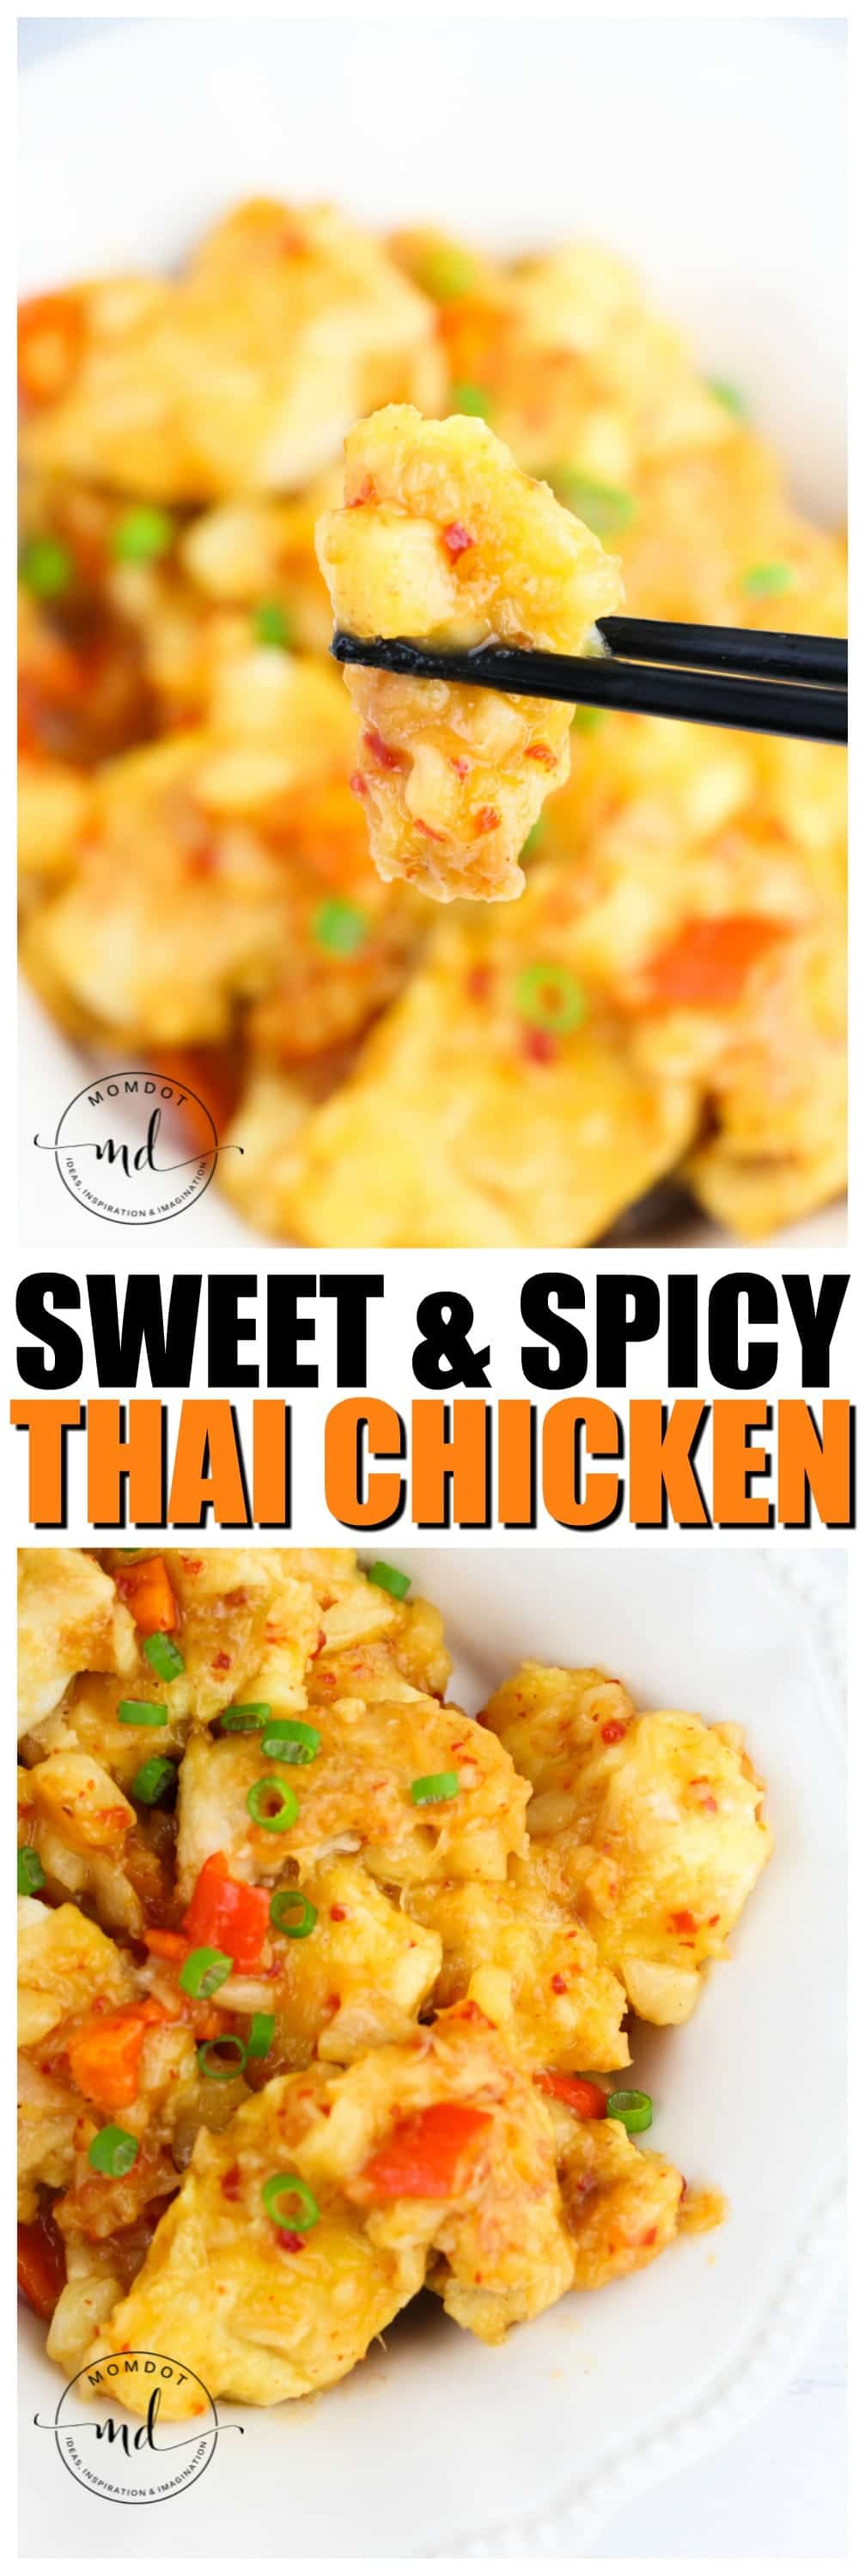 Sweet Thai Chicken Recipe | Chicken Recipe | Spicy Thai Chili Chicken recipe